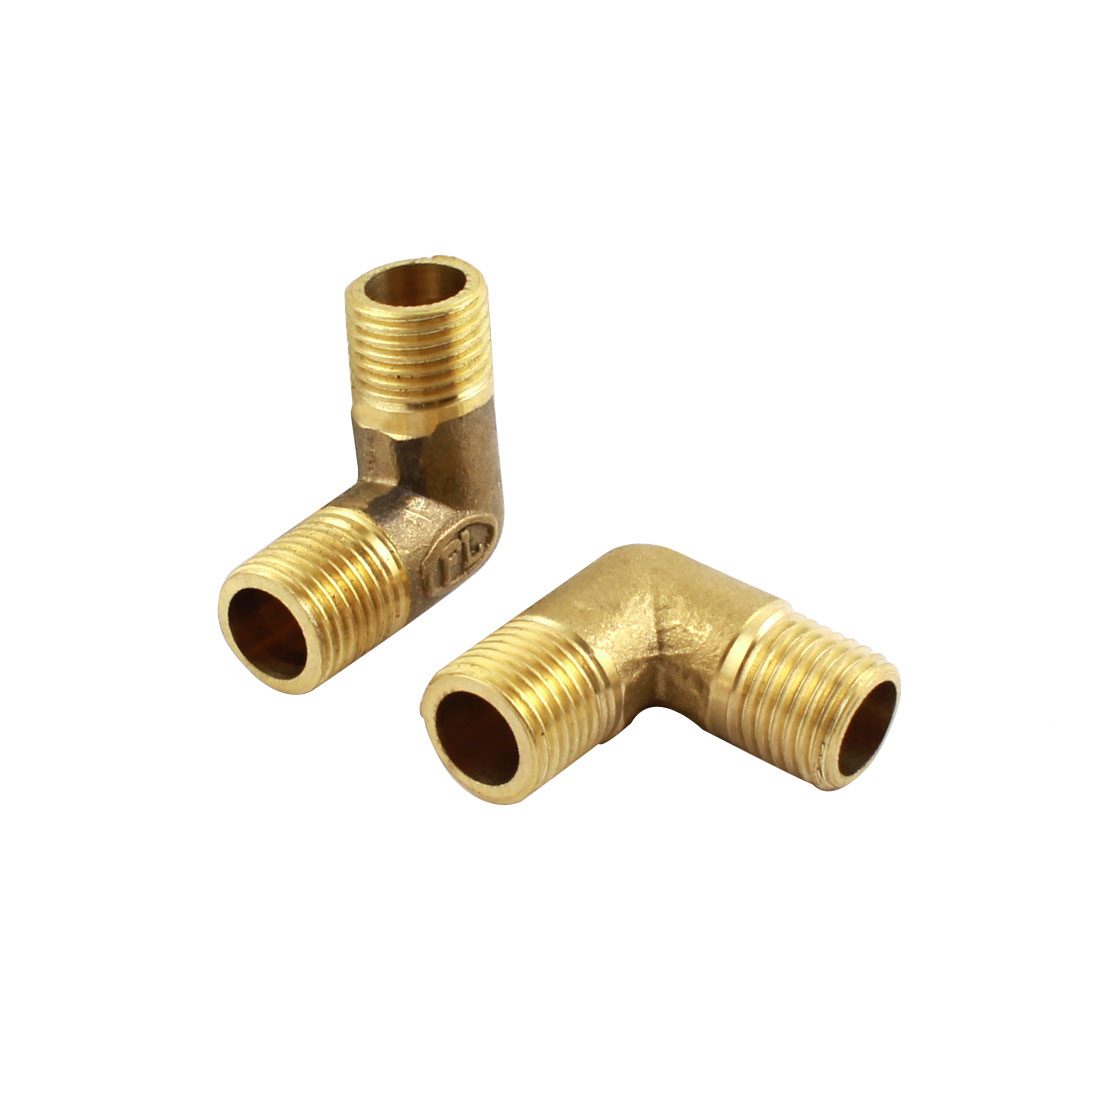 2pcs 1/4PT M/M Brass Right Angle Male Joint Connector for Water Fuel Pipe